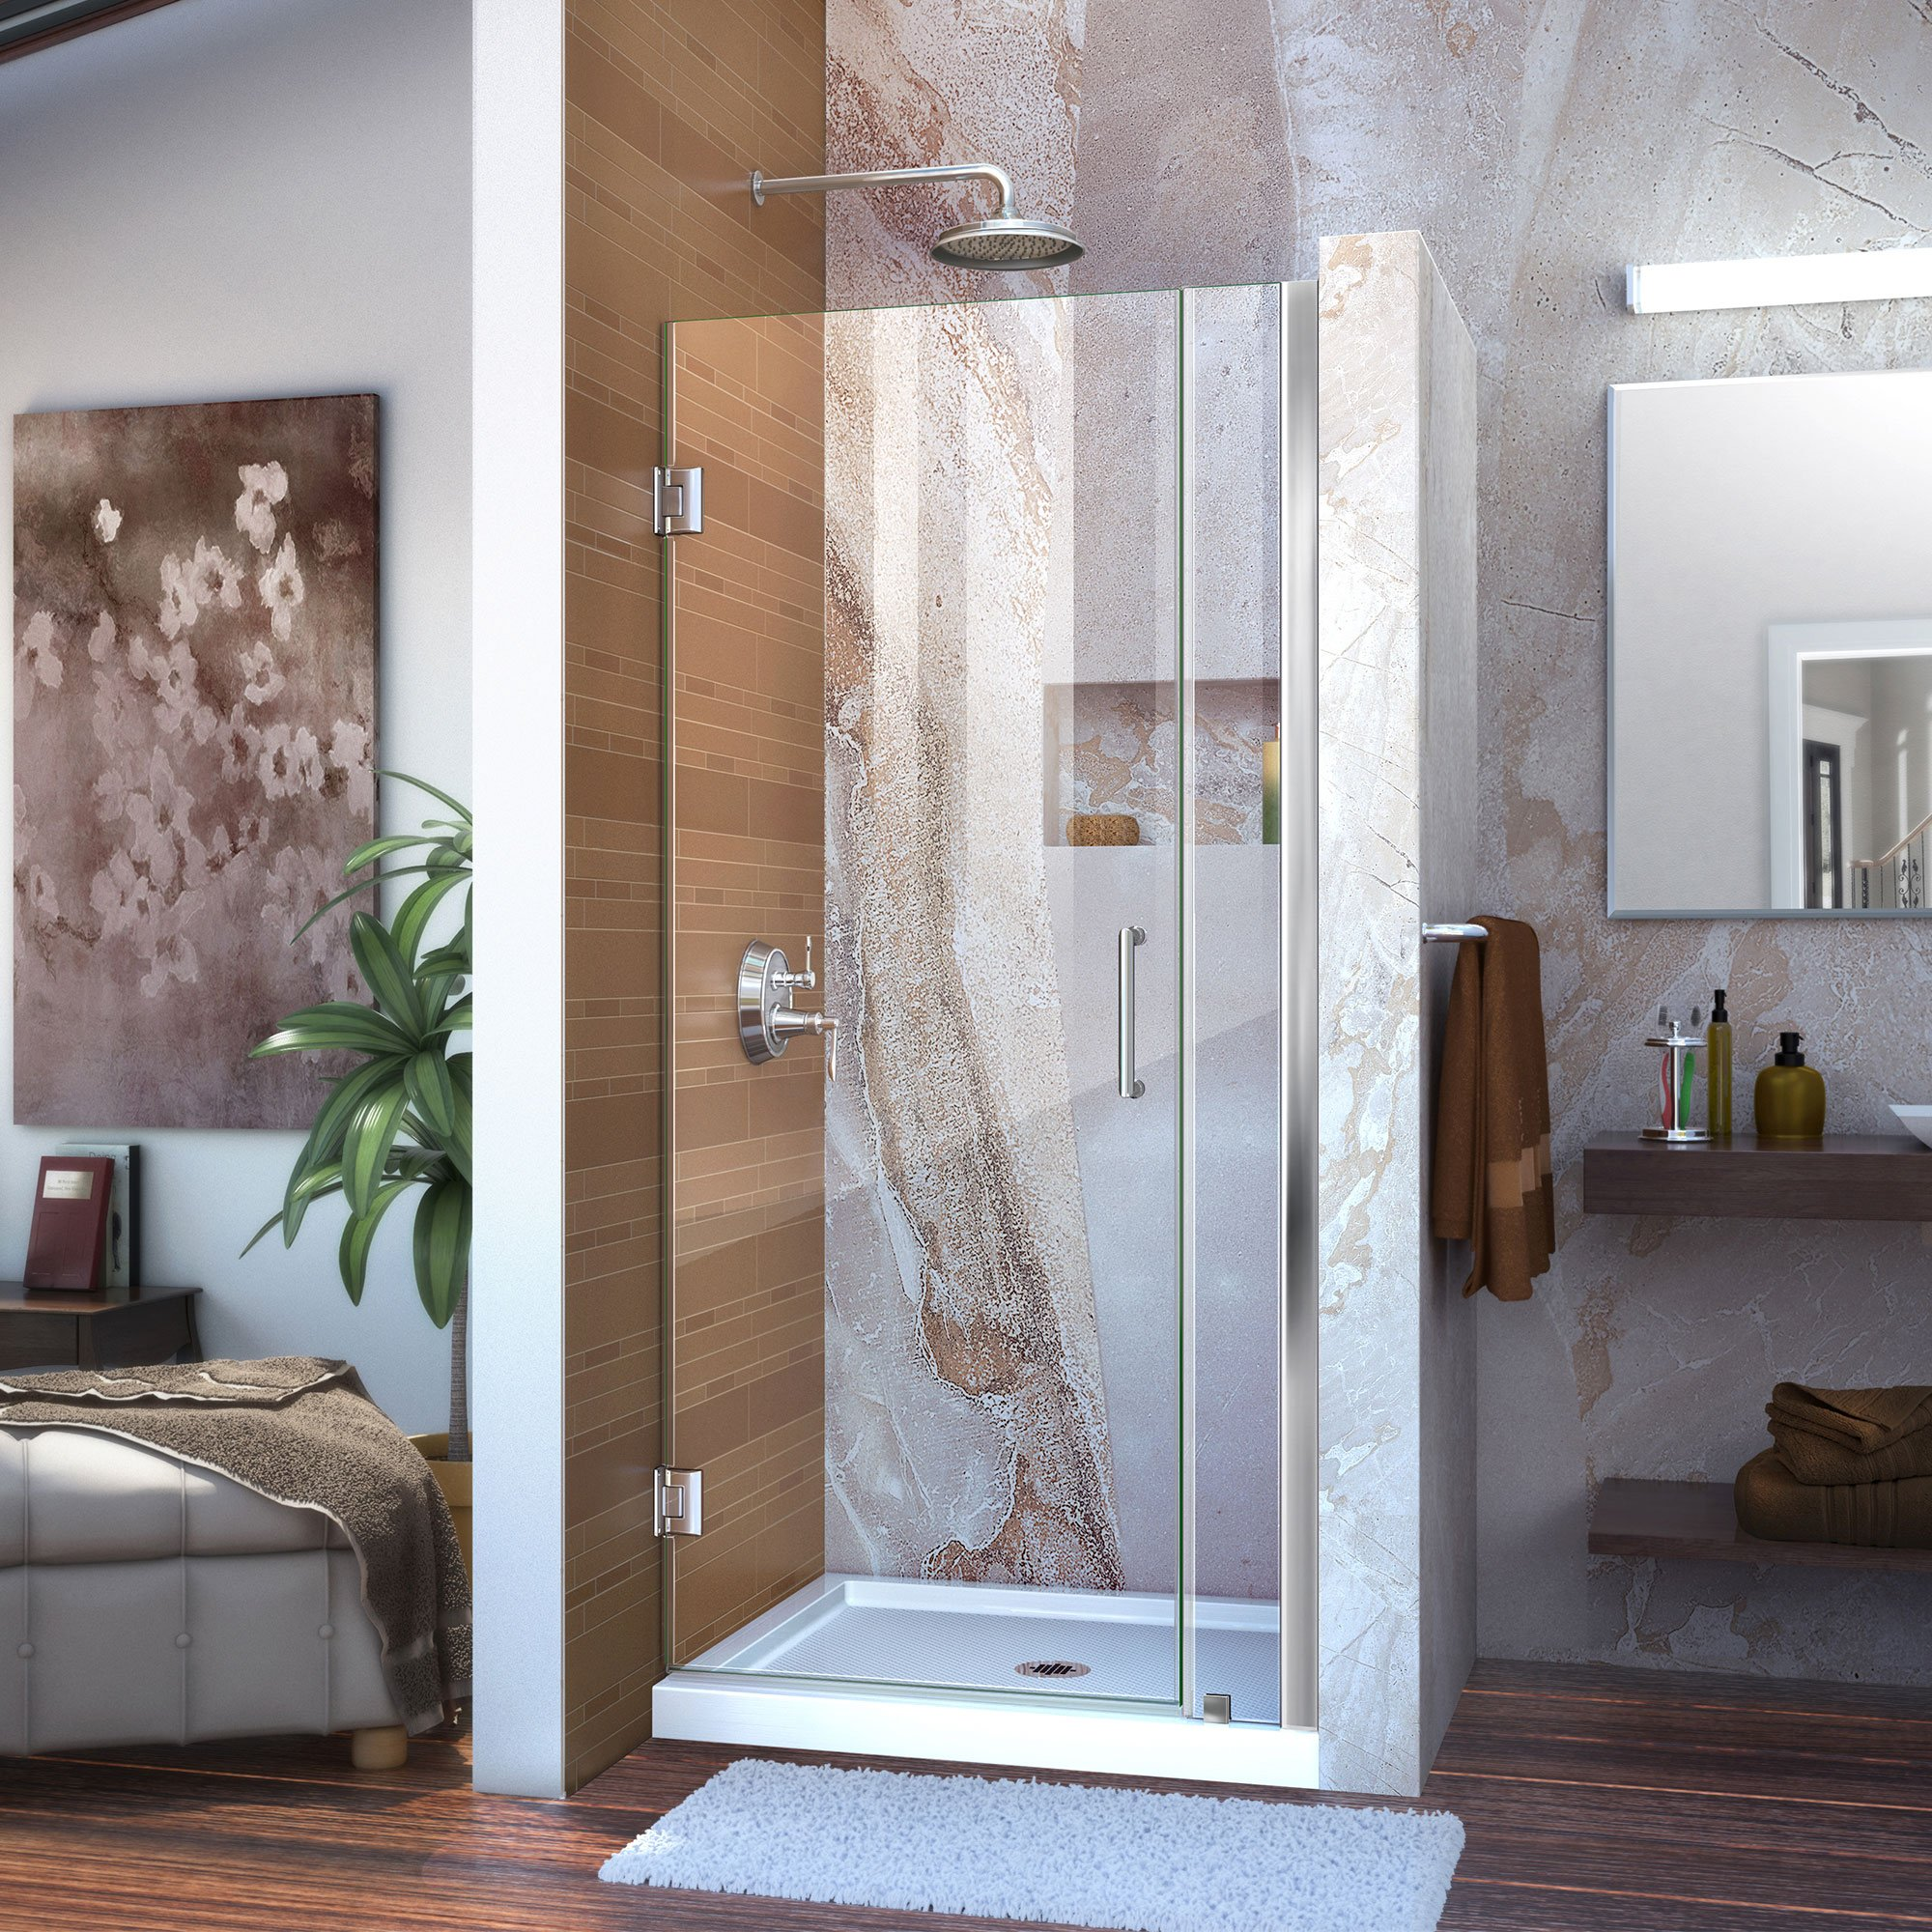 DreamLine Unidoor 34-35 in. Width, Frameless Hinged Shower Door, 3/8'' Glass, Chrome Finish by DreamLine